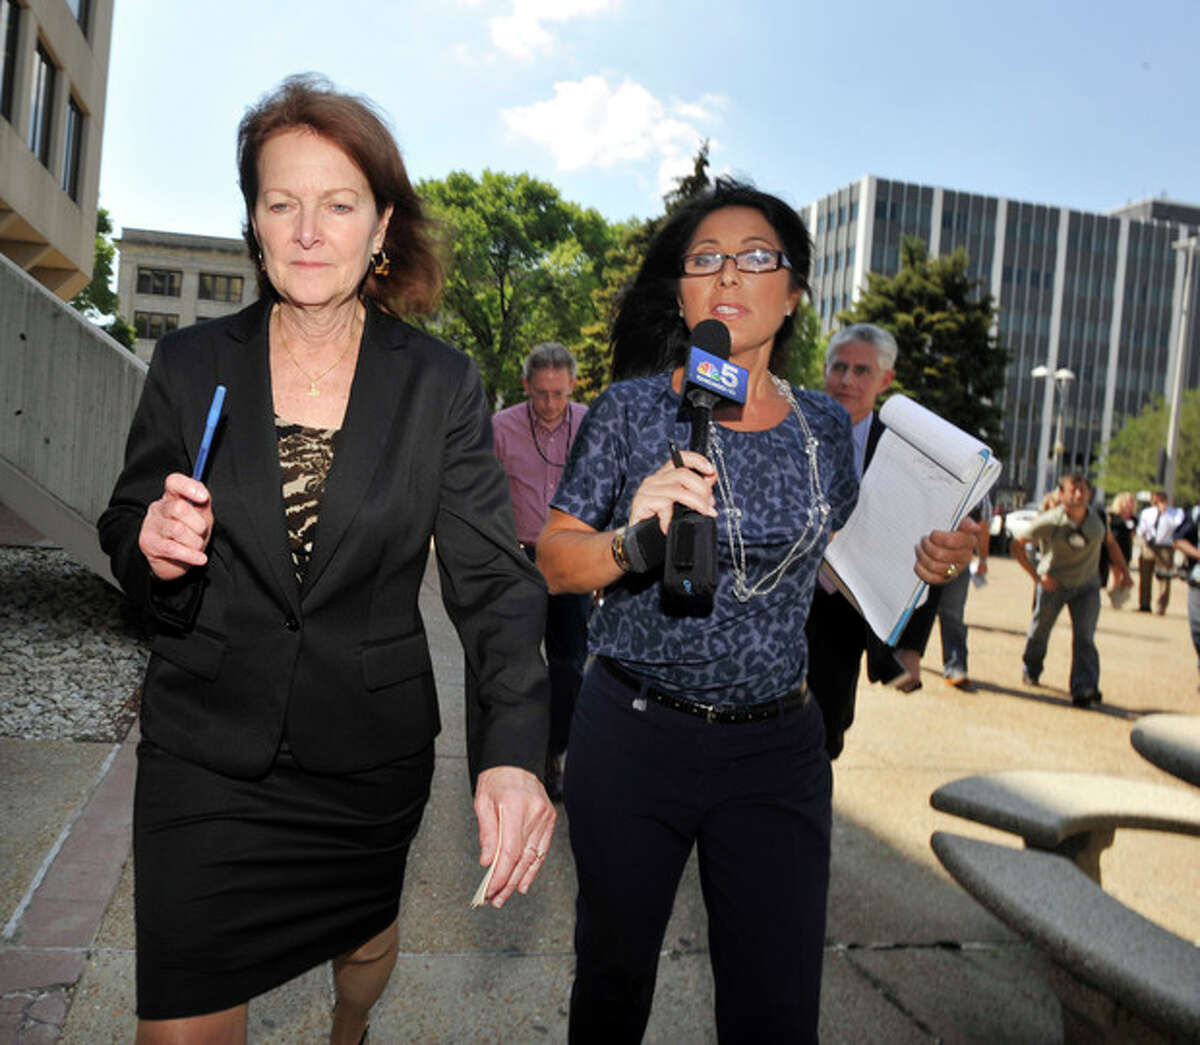 Will County States Attorney Kathleen Patton left, leaves the Will County Courthouse after the second day of the murder trial of Drew Peterson, Wednesday, Aug. 1, 2012 in Joliet, Ill.. Peterson, 58, is charged with killing his third wife, Kathleen Savio, in 2004. Her body was found in a dry bathtub in her home, her hair soaked with blood. He is also a suspect in the 2007 disappearance of his fourth wife, Stacy Peterson. (AP Photo/Paul Beaty)